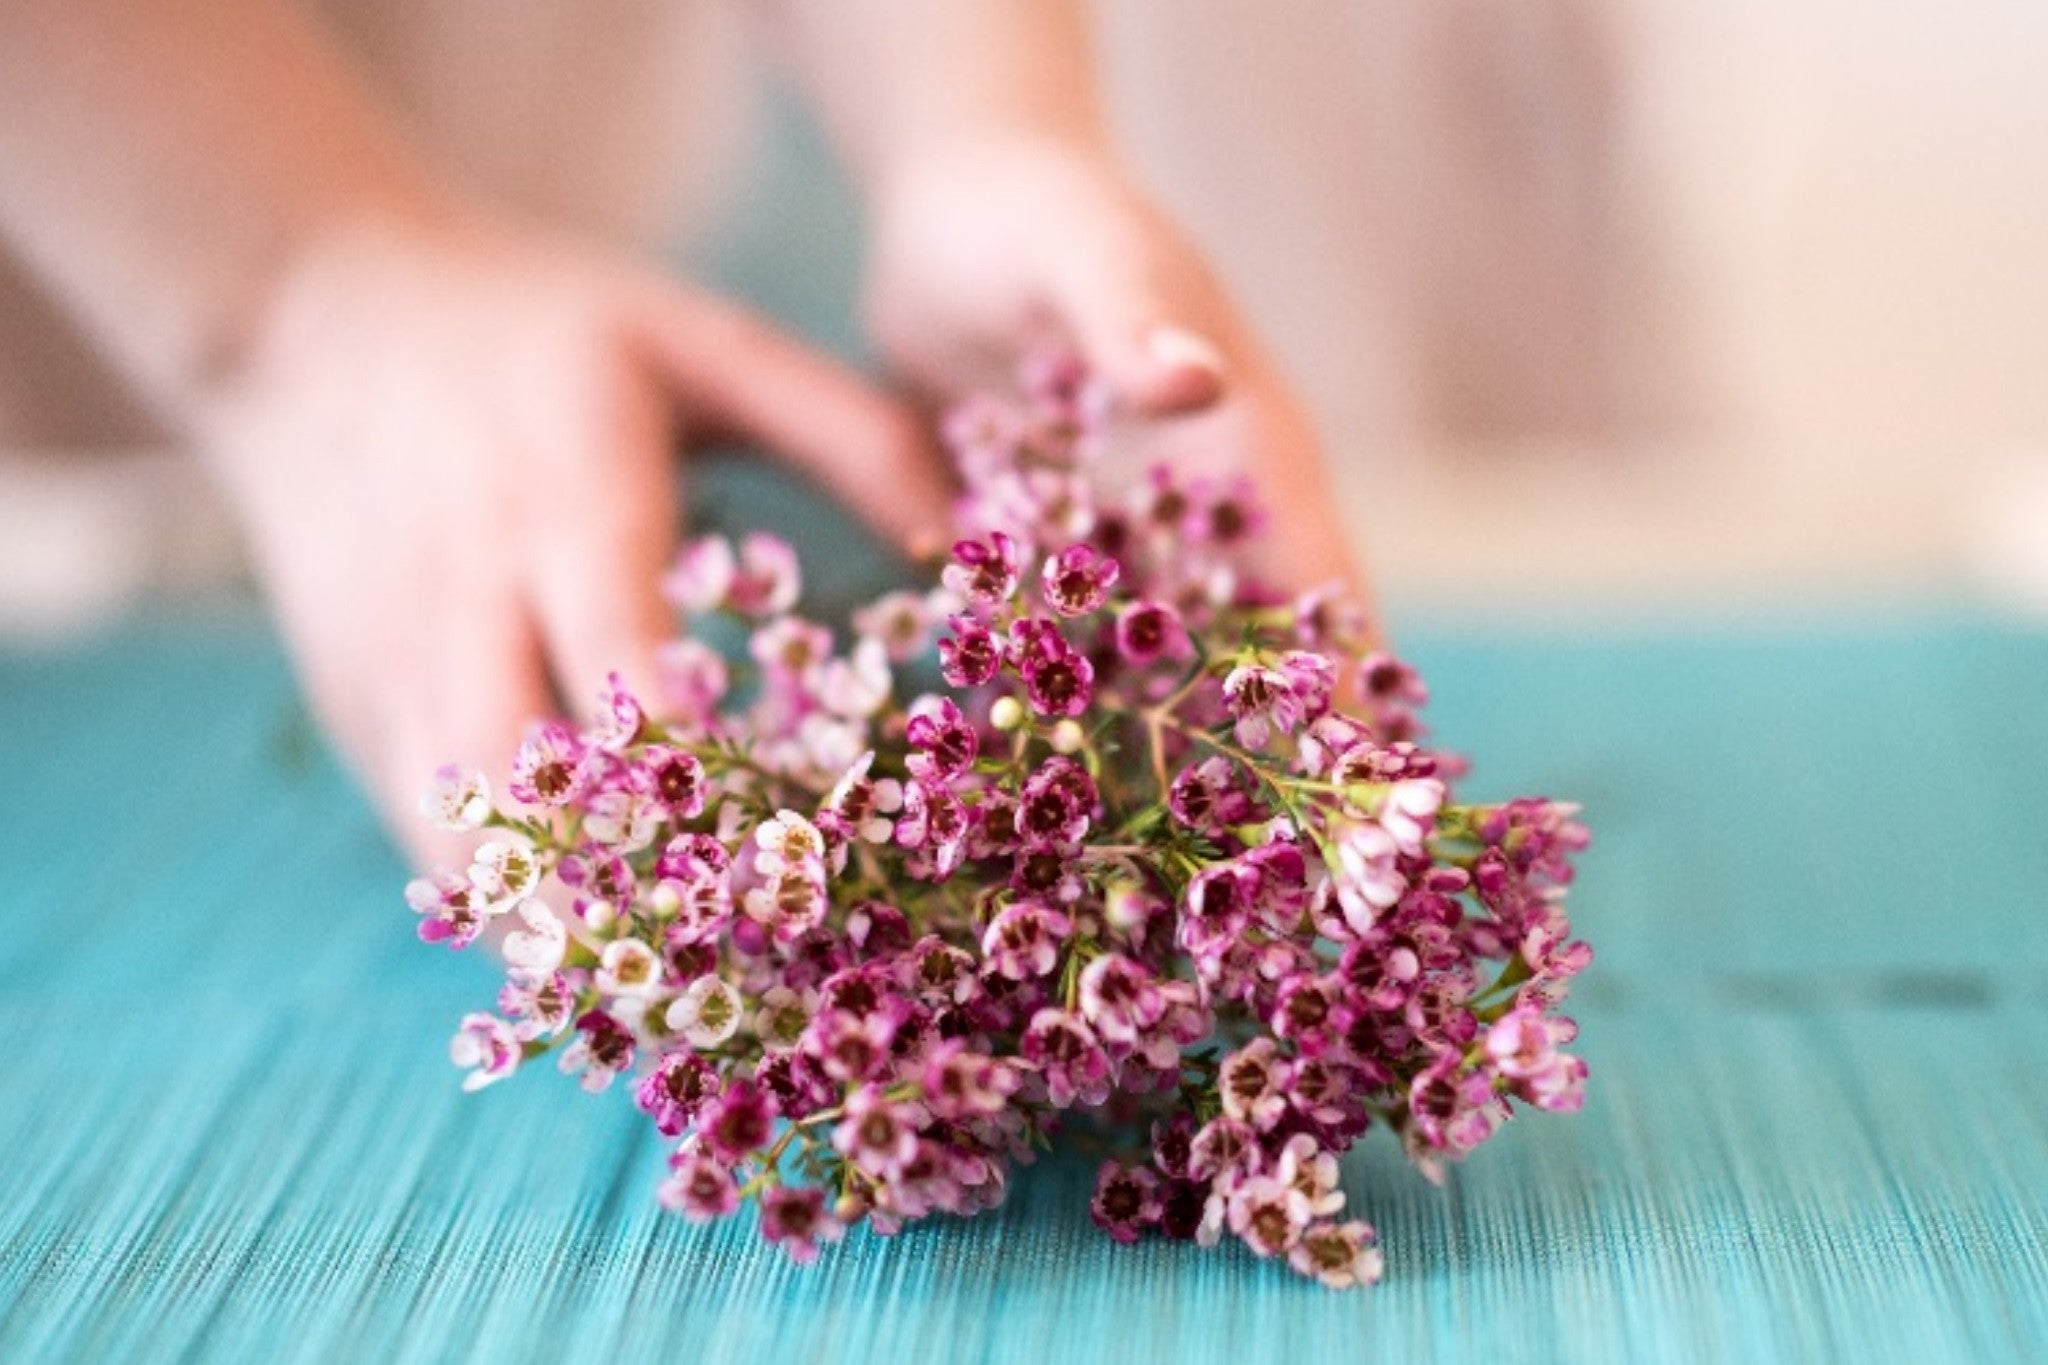 How To Care For Fresh Cut Flowers Flower Care Care Instructions